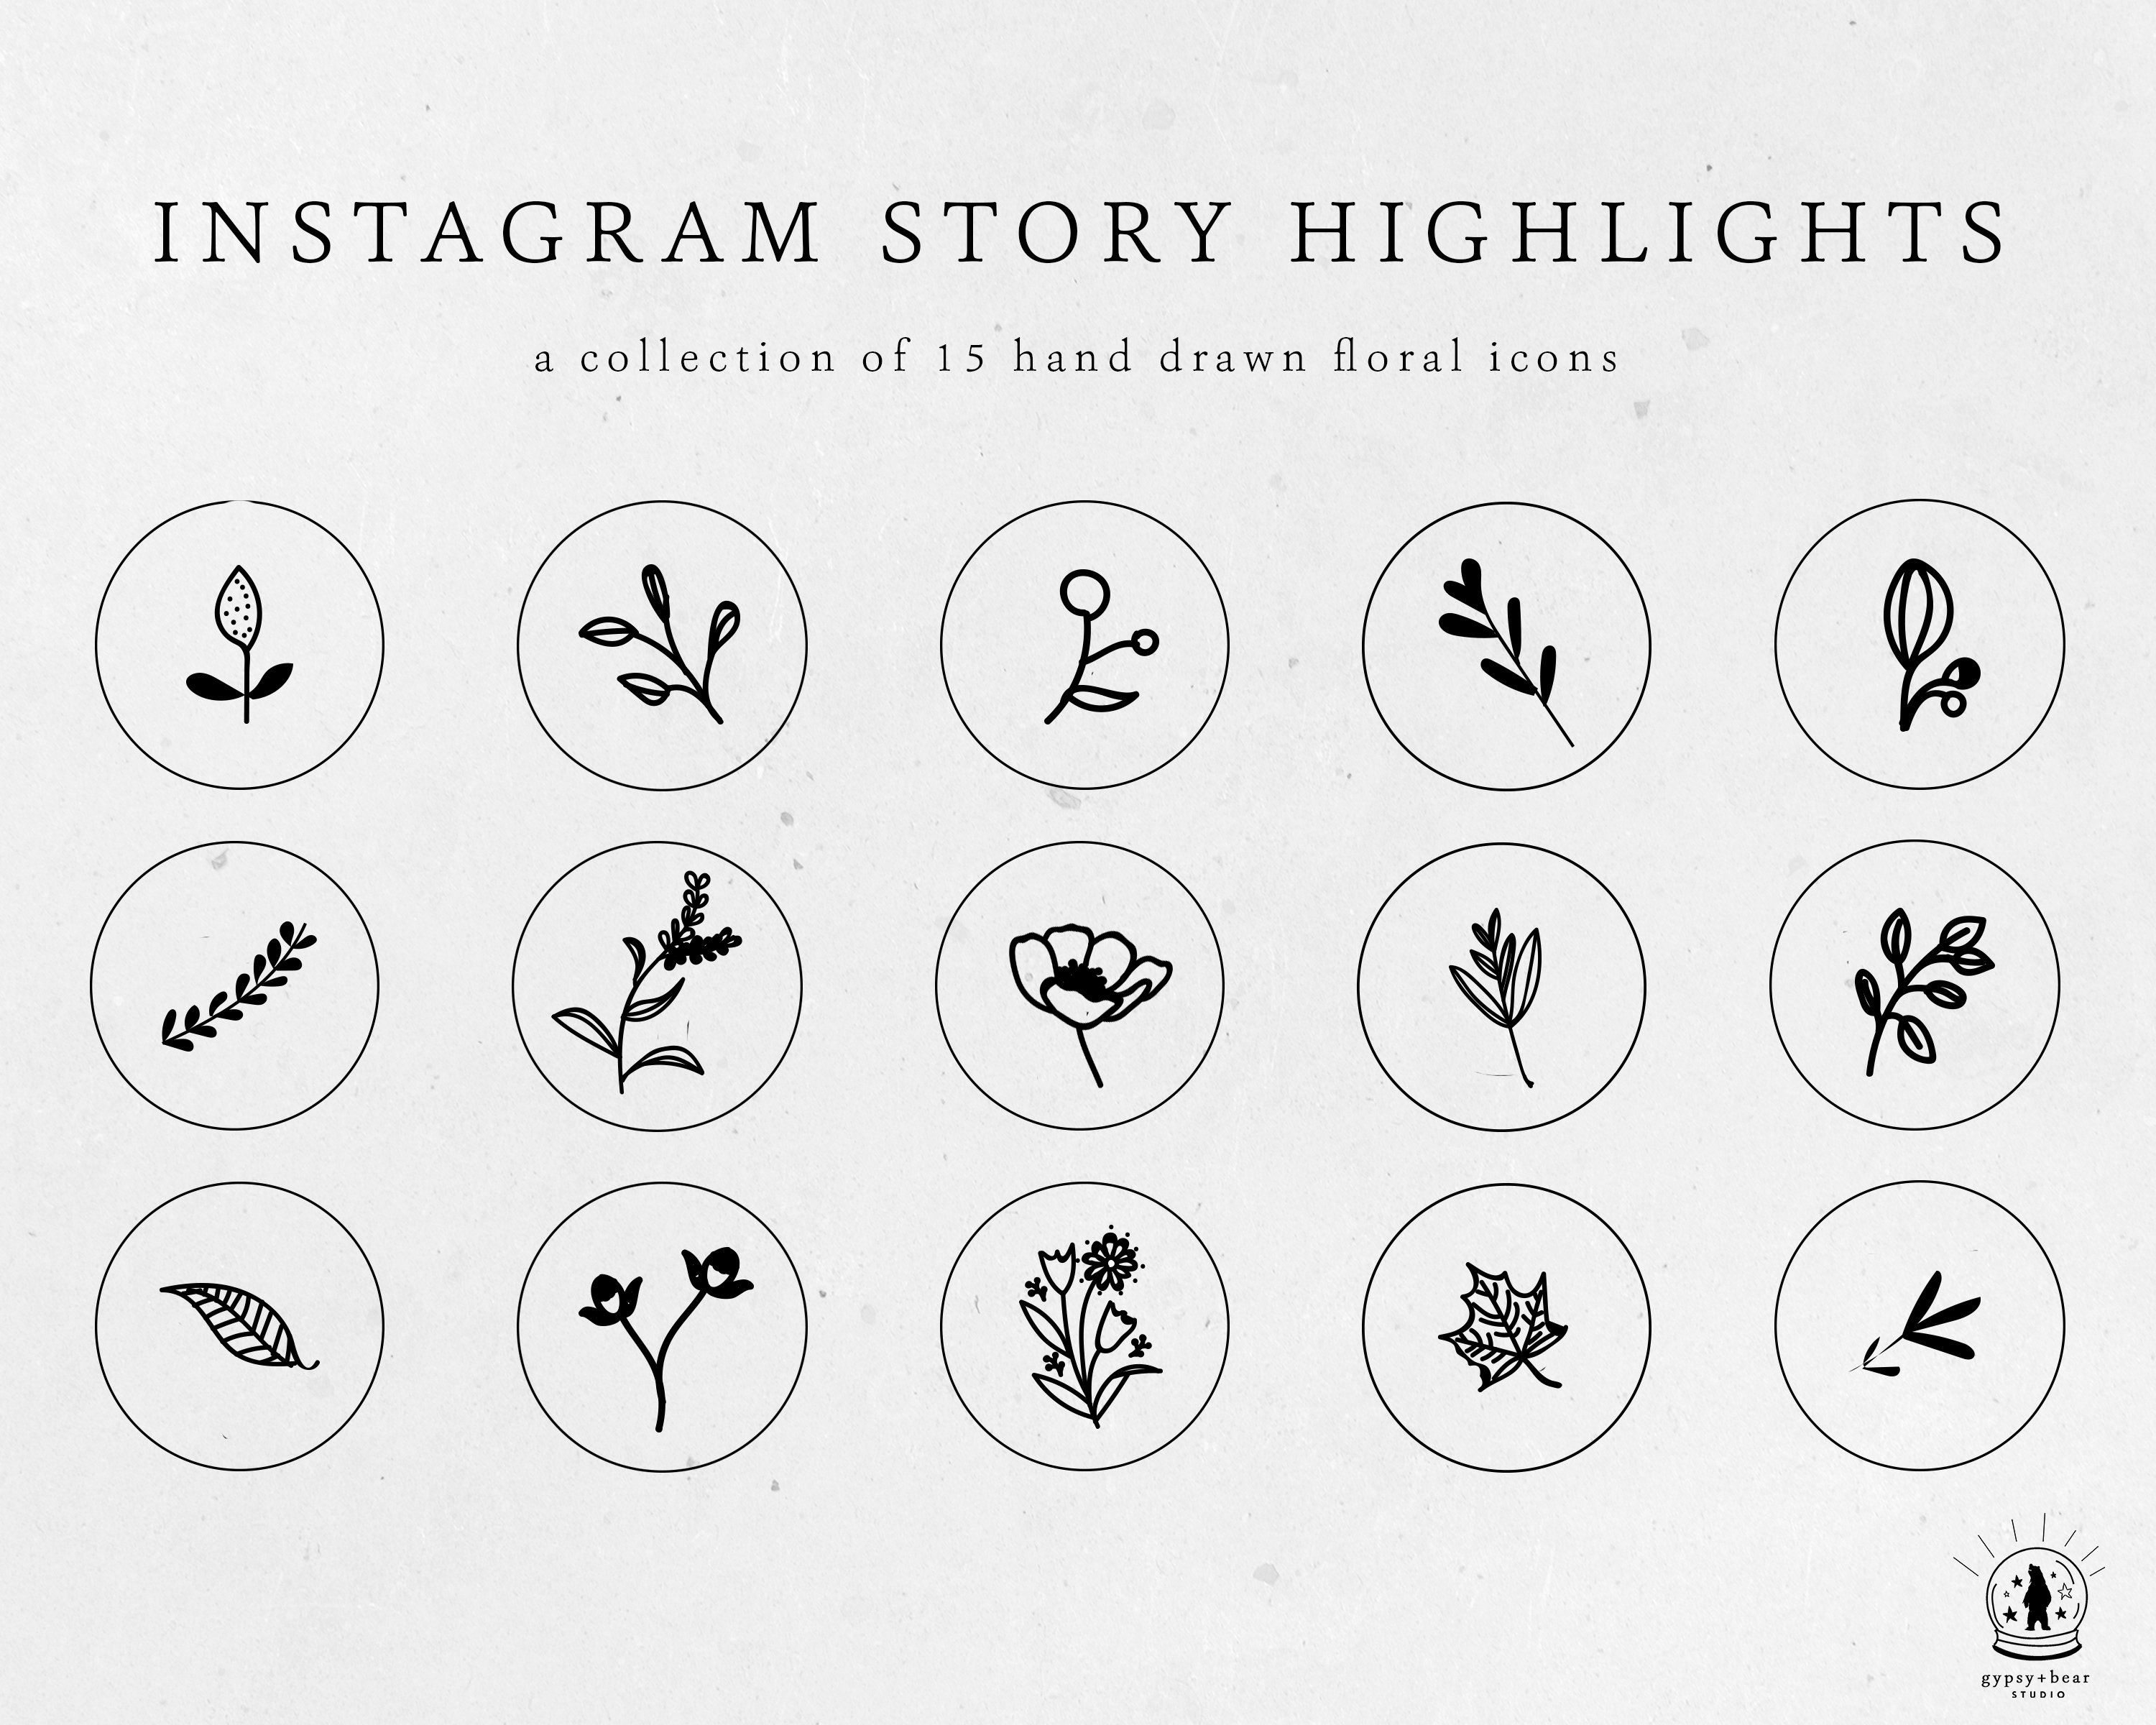 Highlight Covers Instagram Stories Highlights Botanical Hand Drawn Icons Insta Story Highlights Instagram Story Highlight Icons BOTANICAL